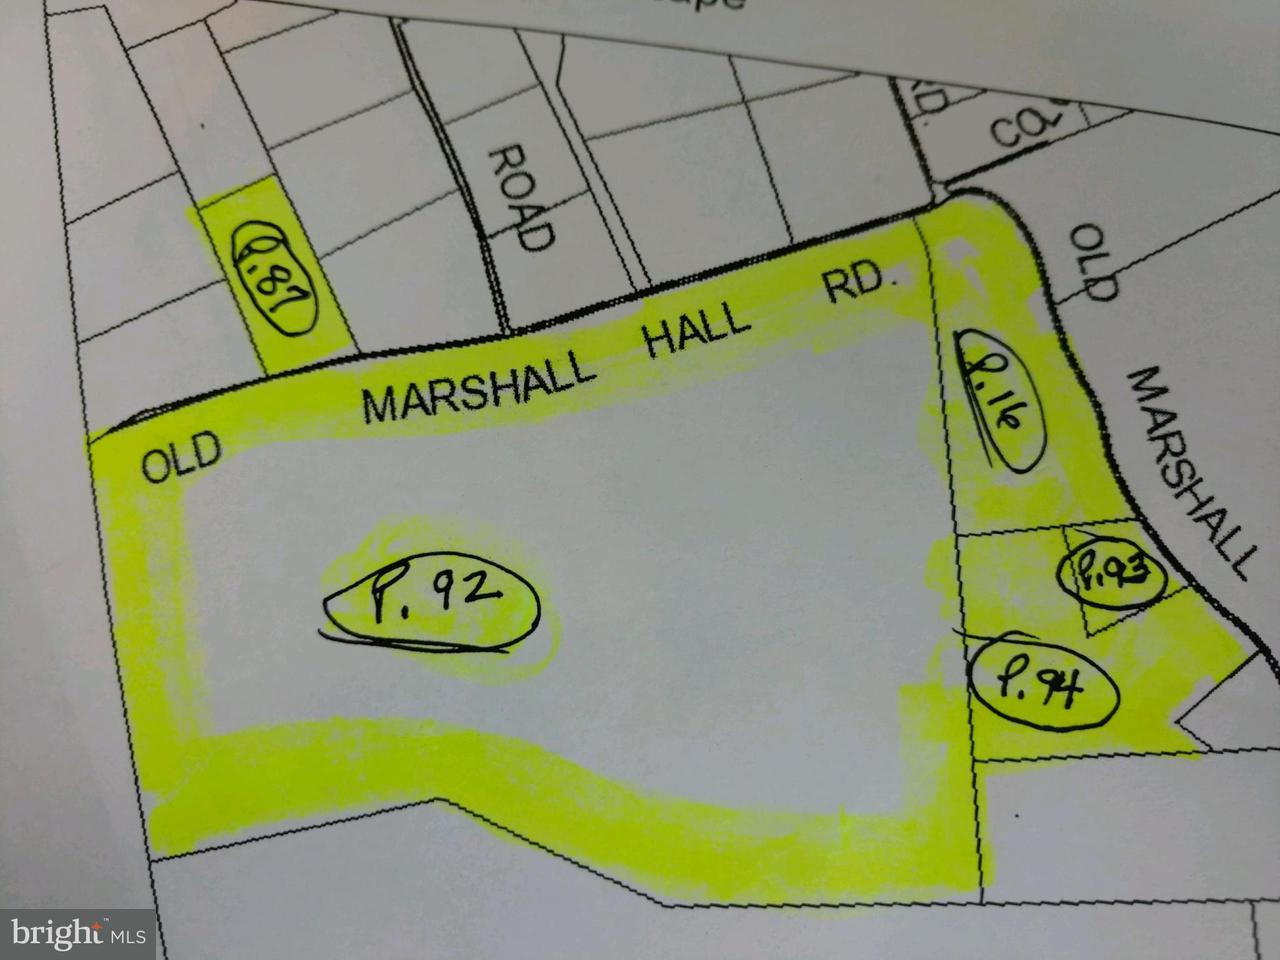 Land for Sale at 15405 Old Marshall Hall Road 15405 Old Marshall Hall Road Accokeek, Maryland 20607 United States